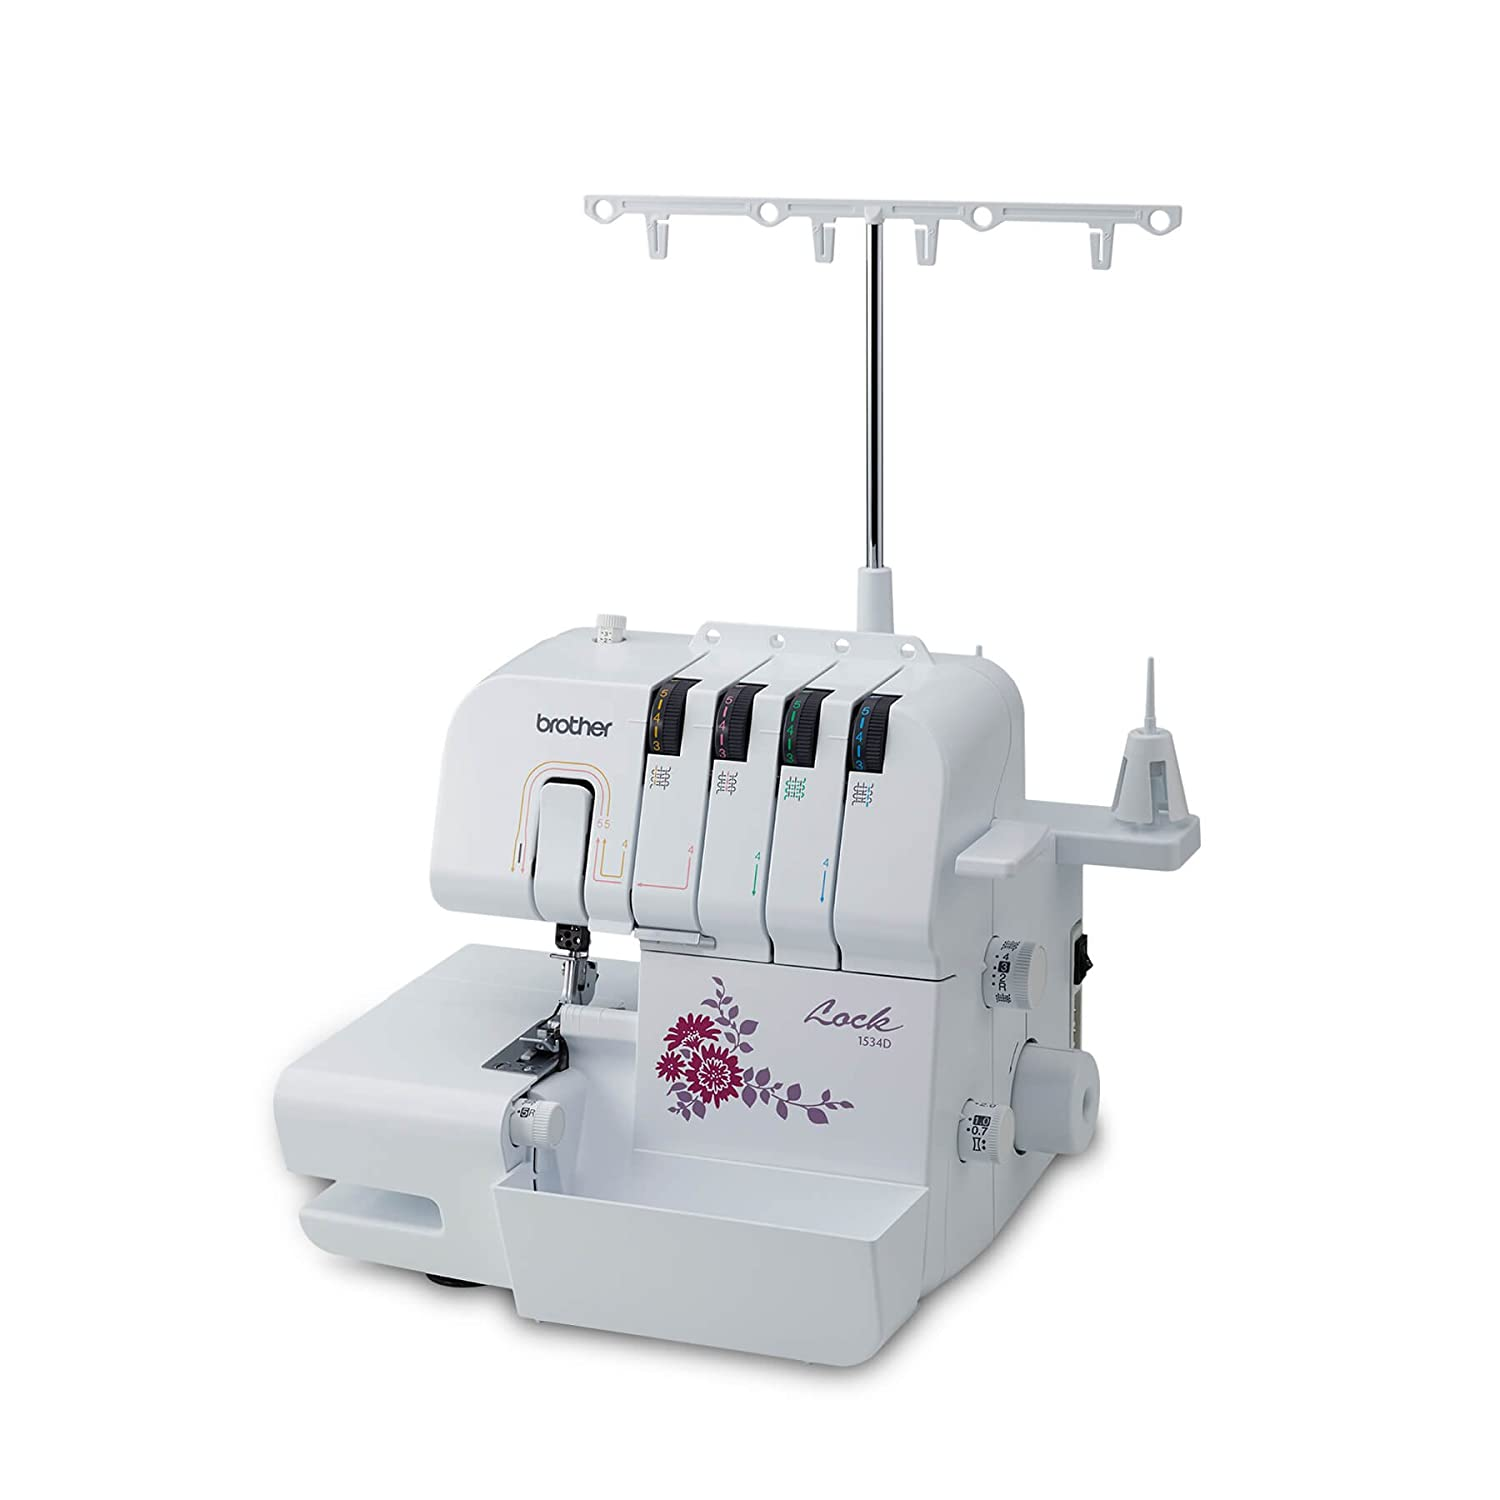 Brother 1534d Serger Small White Home Kitchen Kenmore Model 12 Sewing Machine Threading Diagram